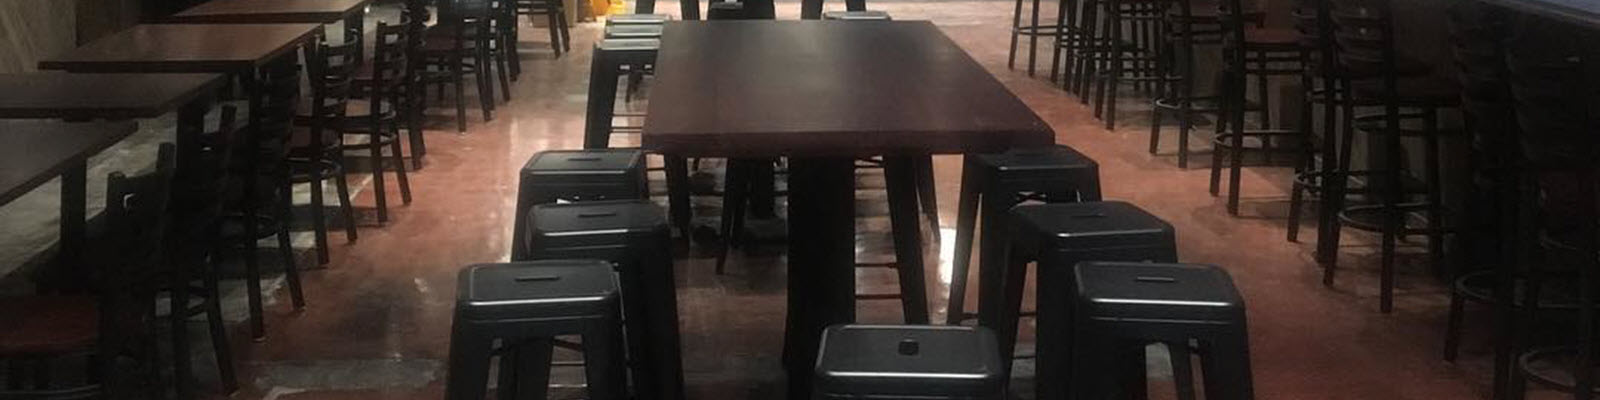 Metal chairs and bar stools